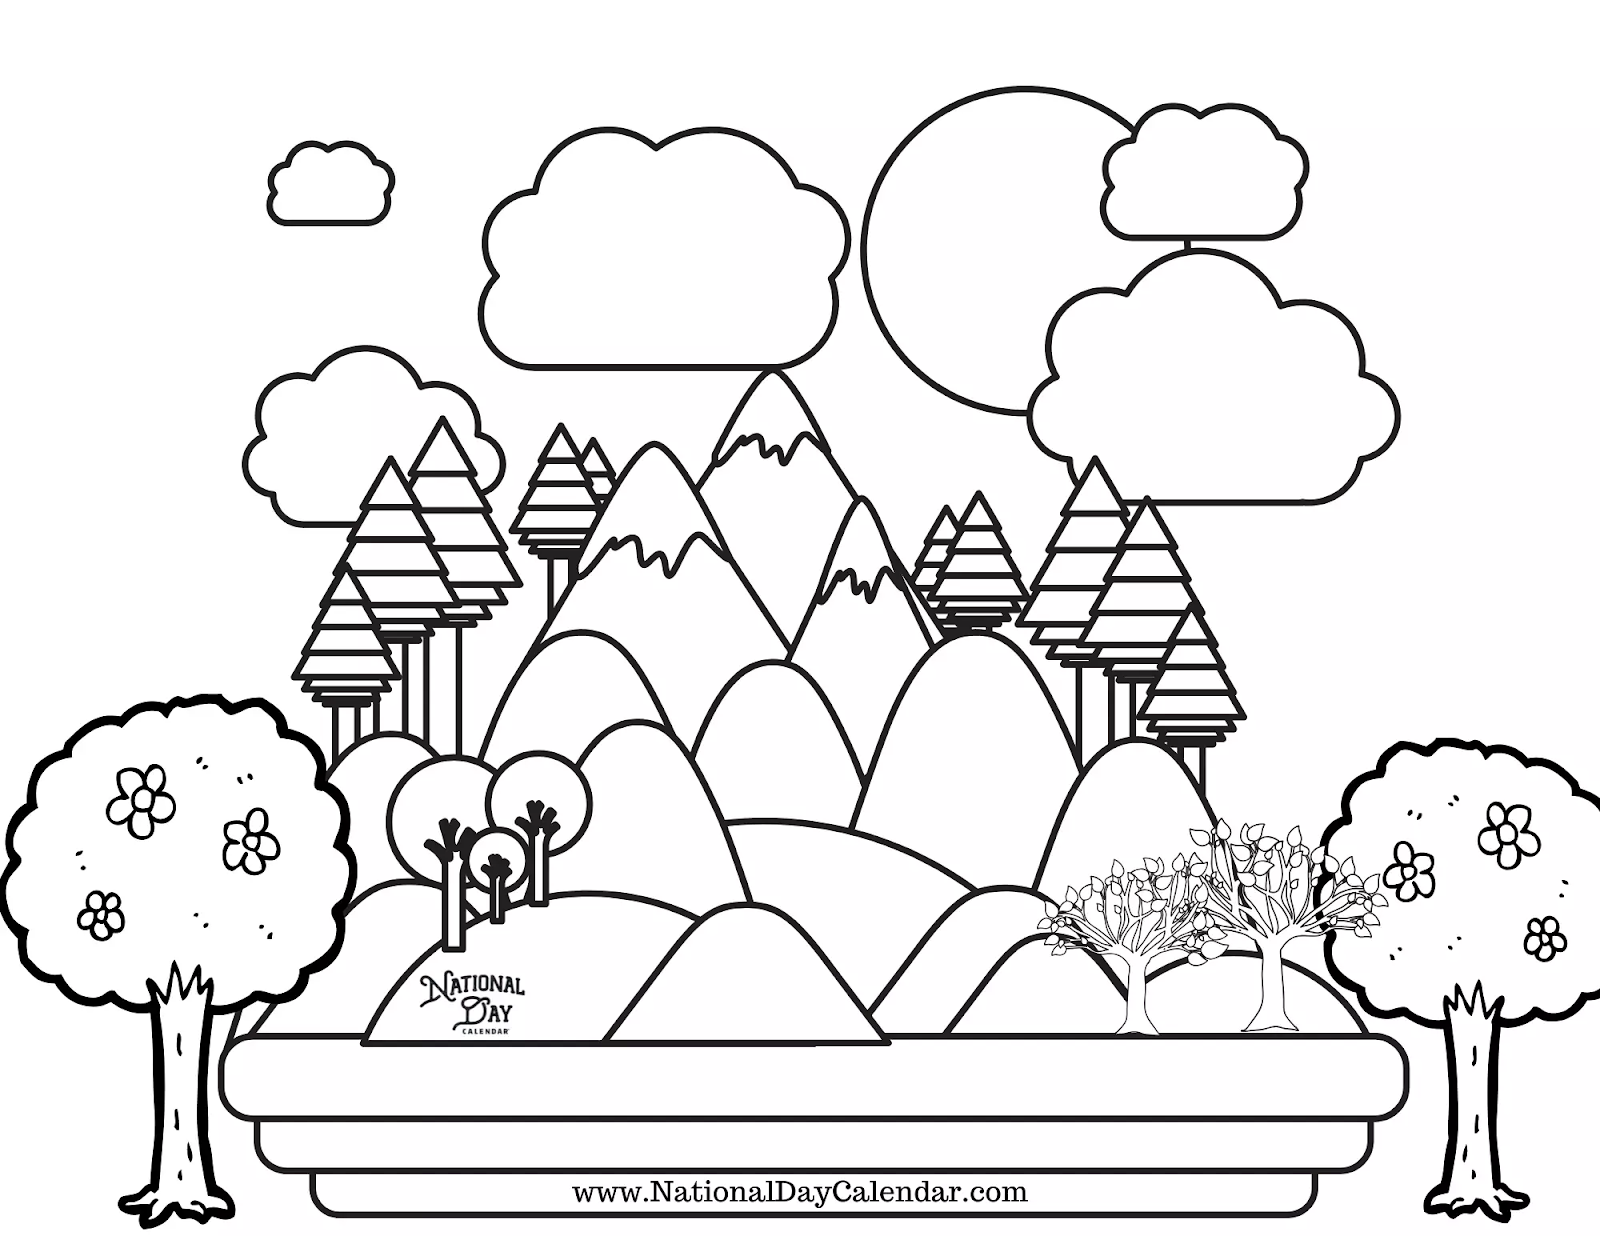 Idaho State Bird coloring page | Free Printable Coloring Pages | 1236x1600